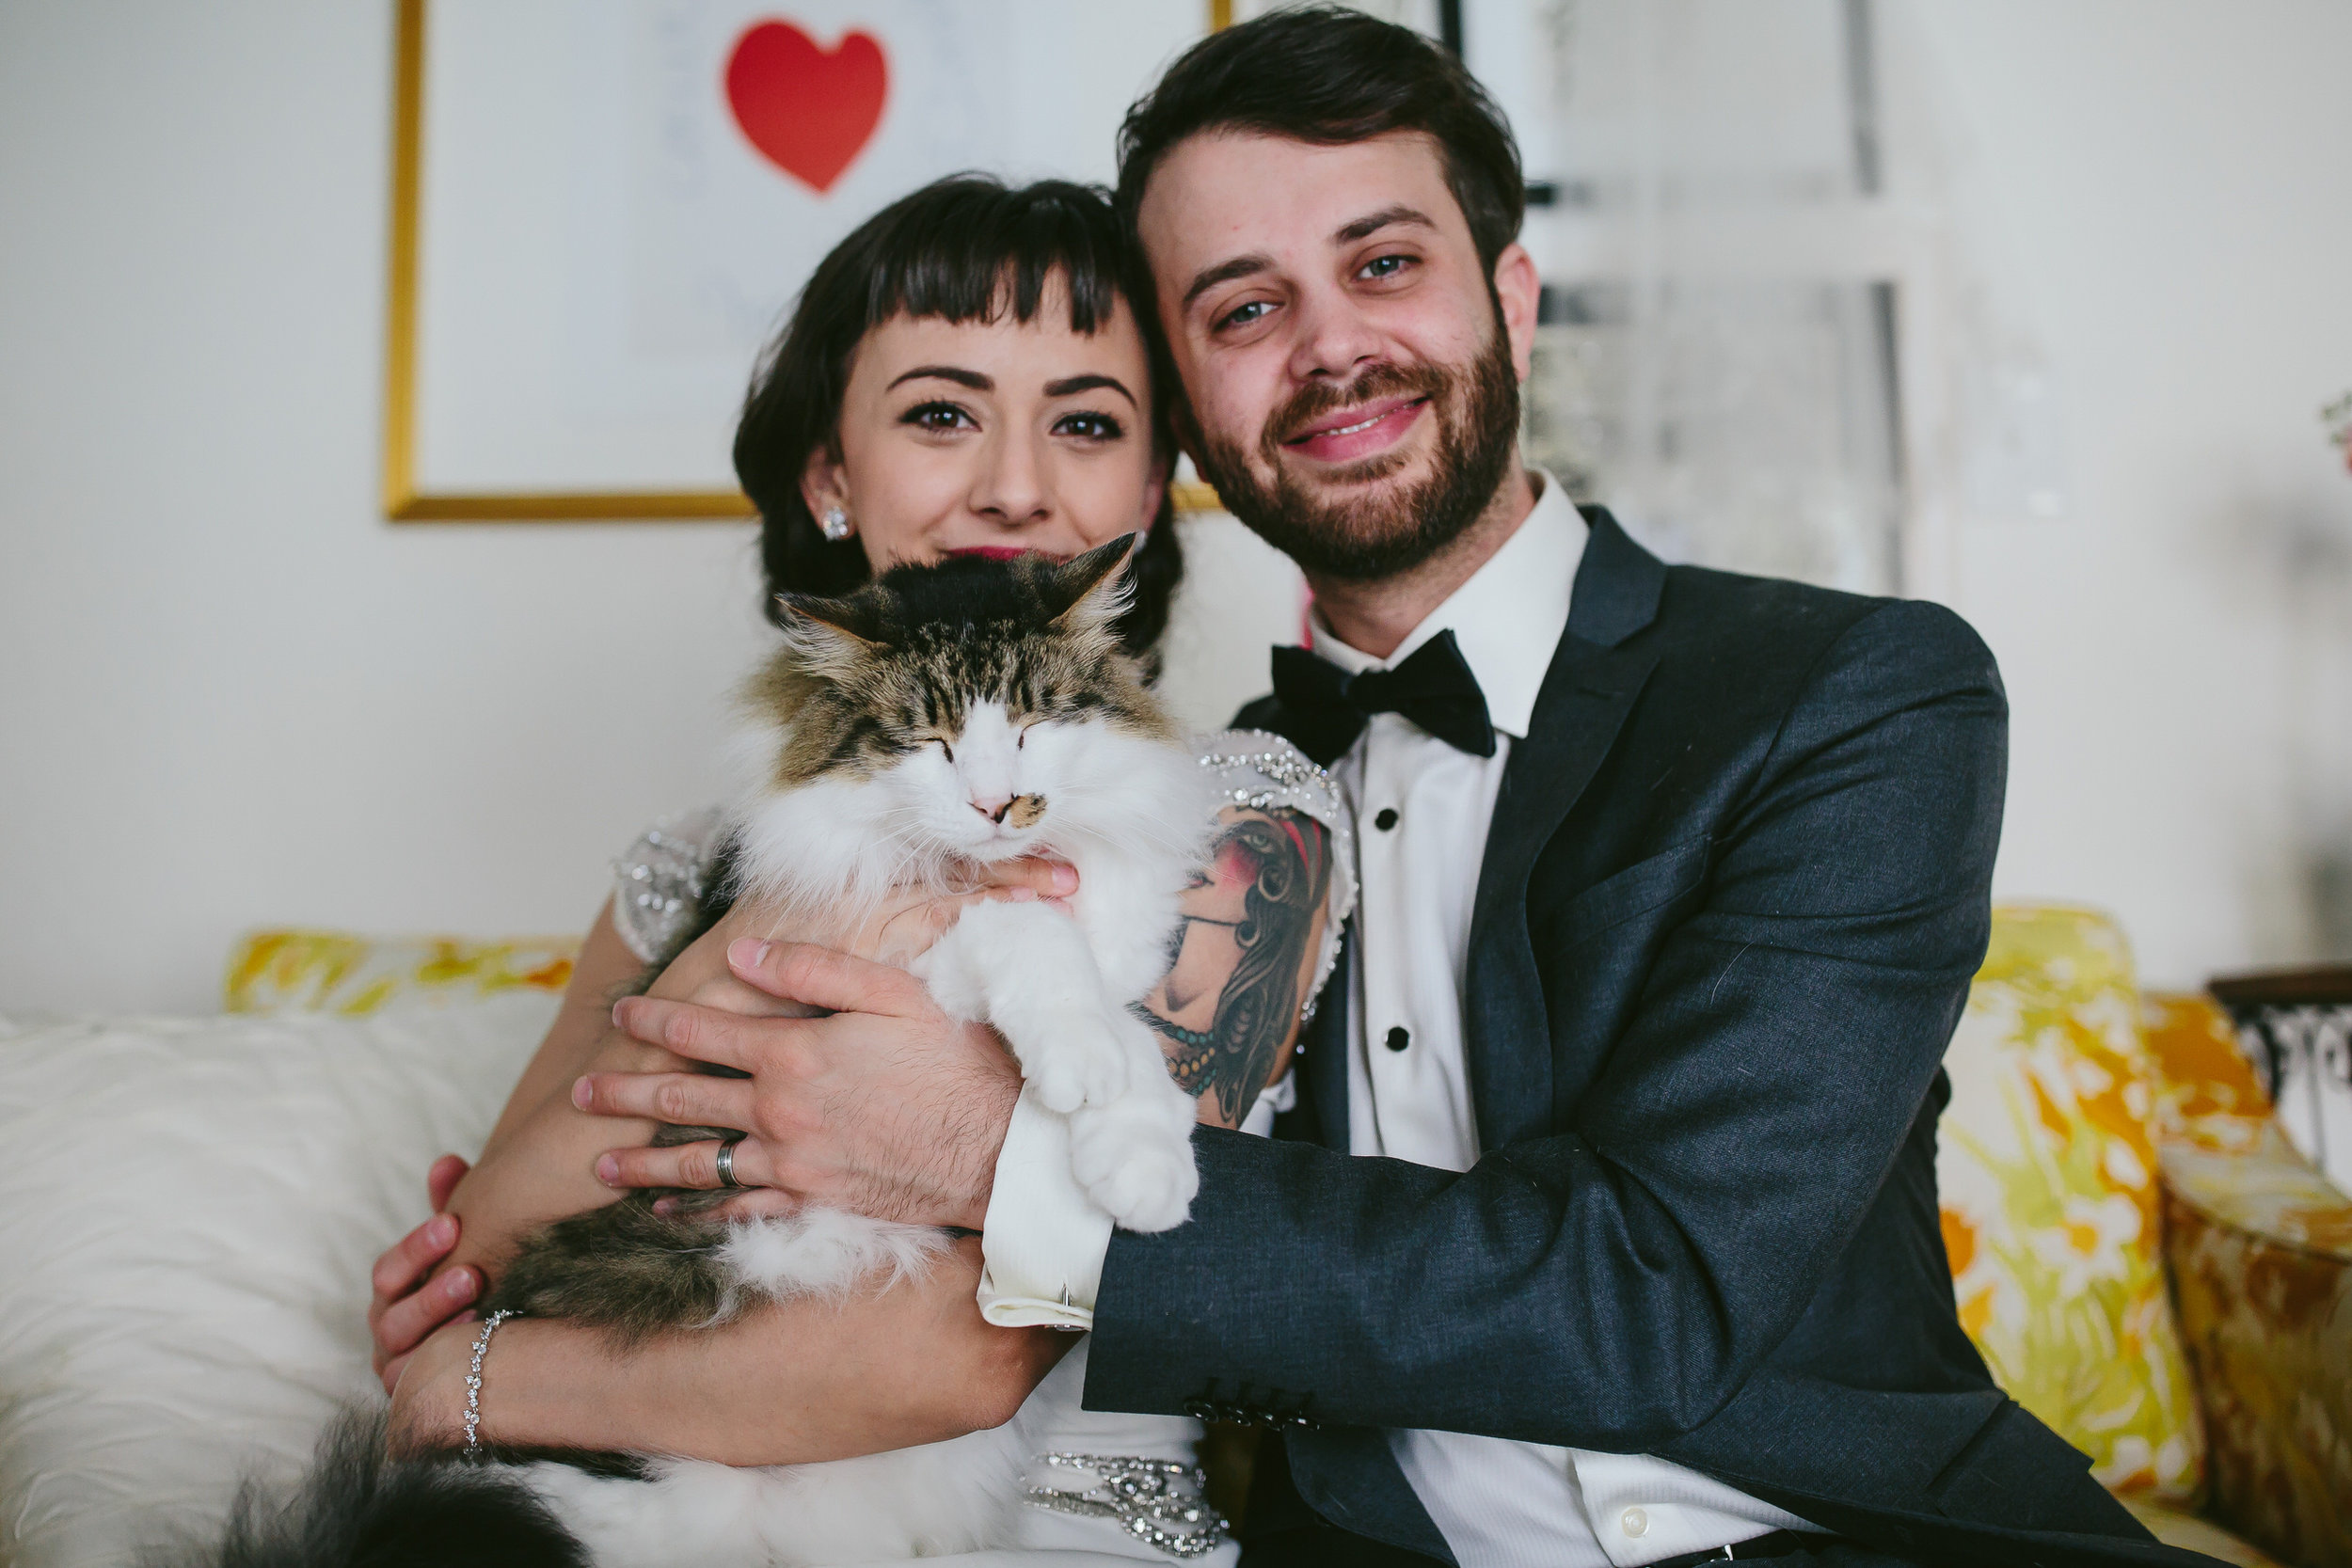 bride_and_groom_cats_in_home_session_wedding_fort_lauderdale_photographer_steph_lynn_photo-53.jpg